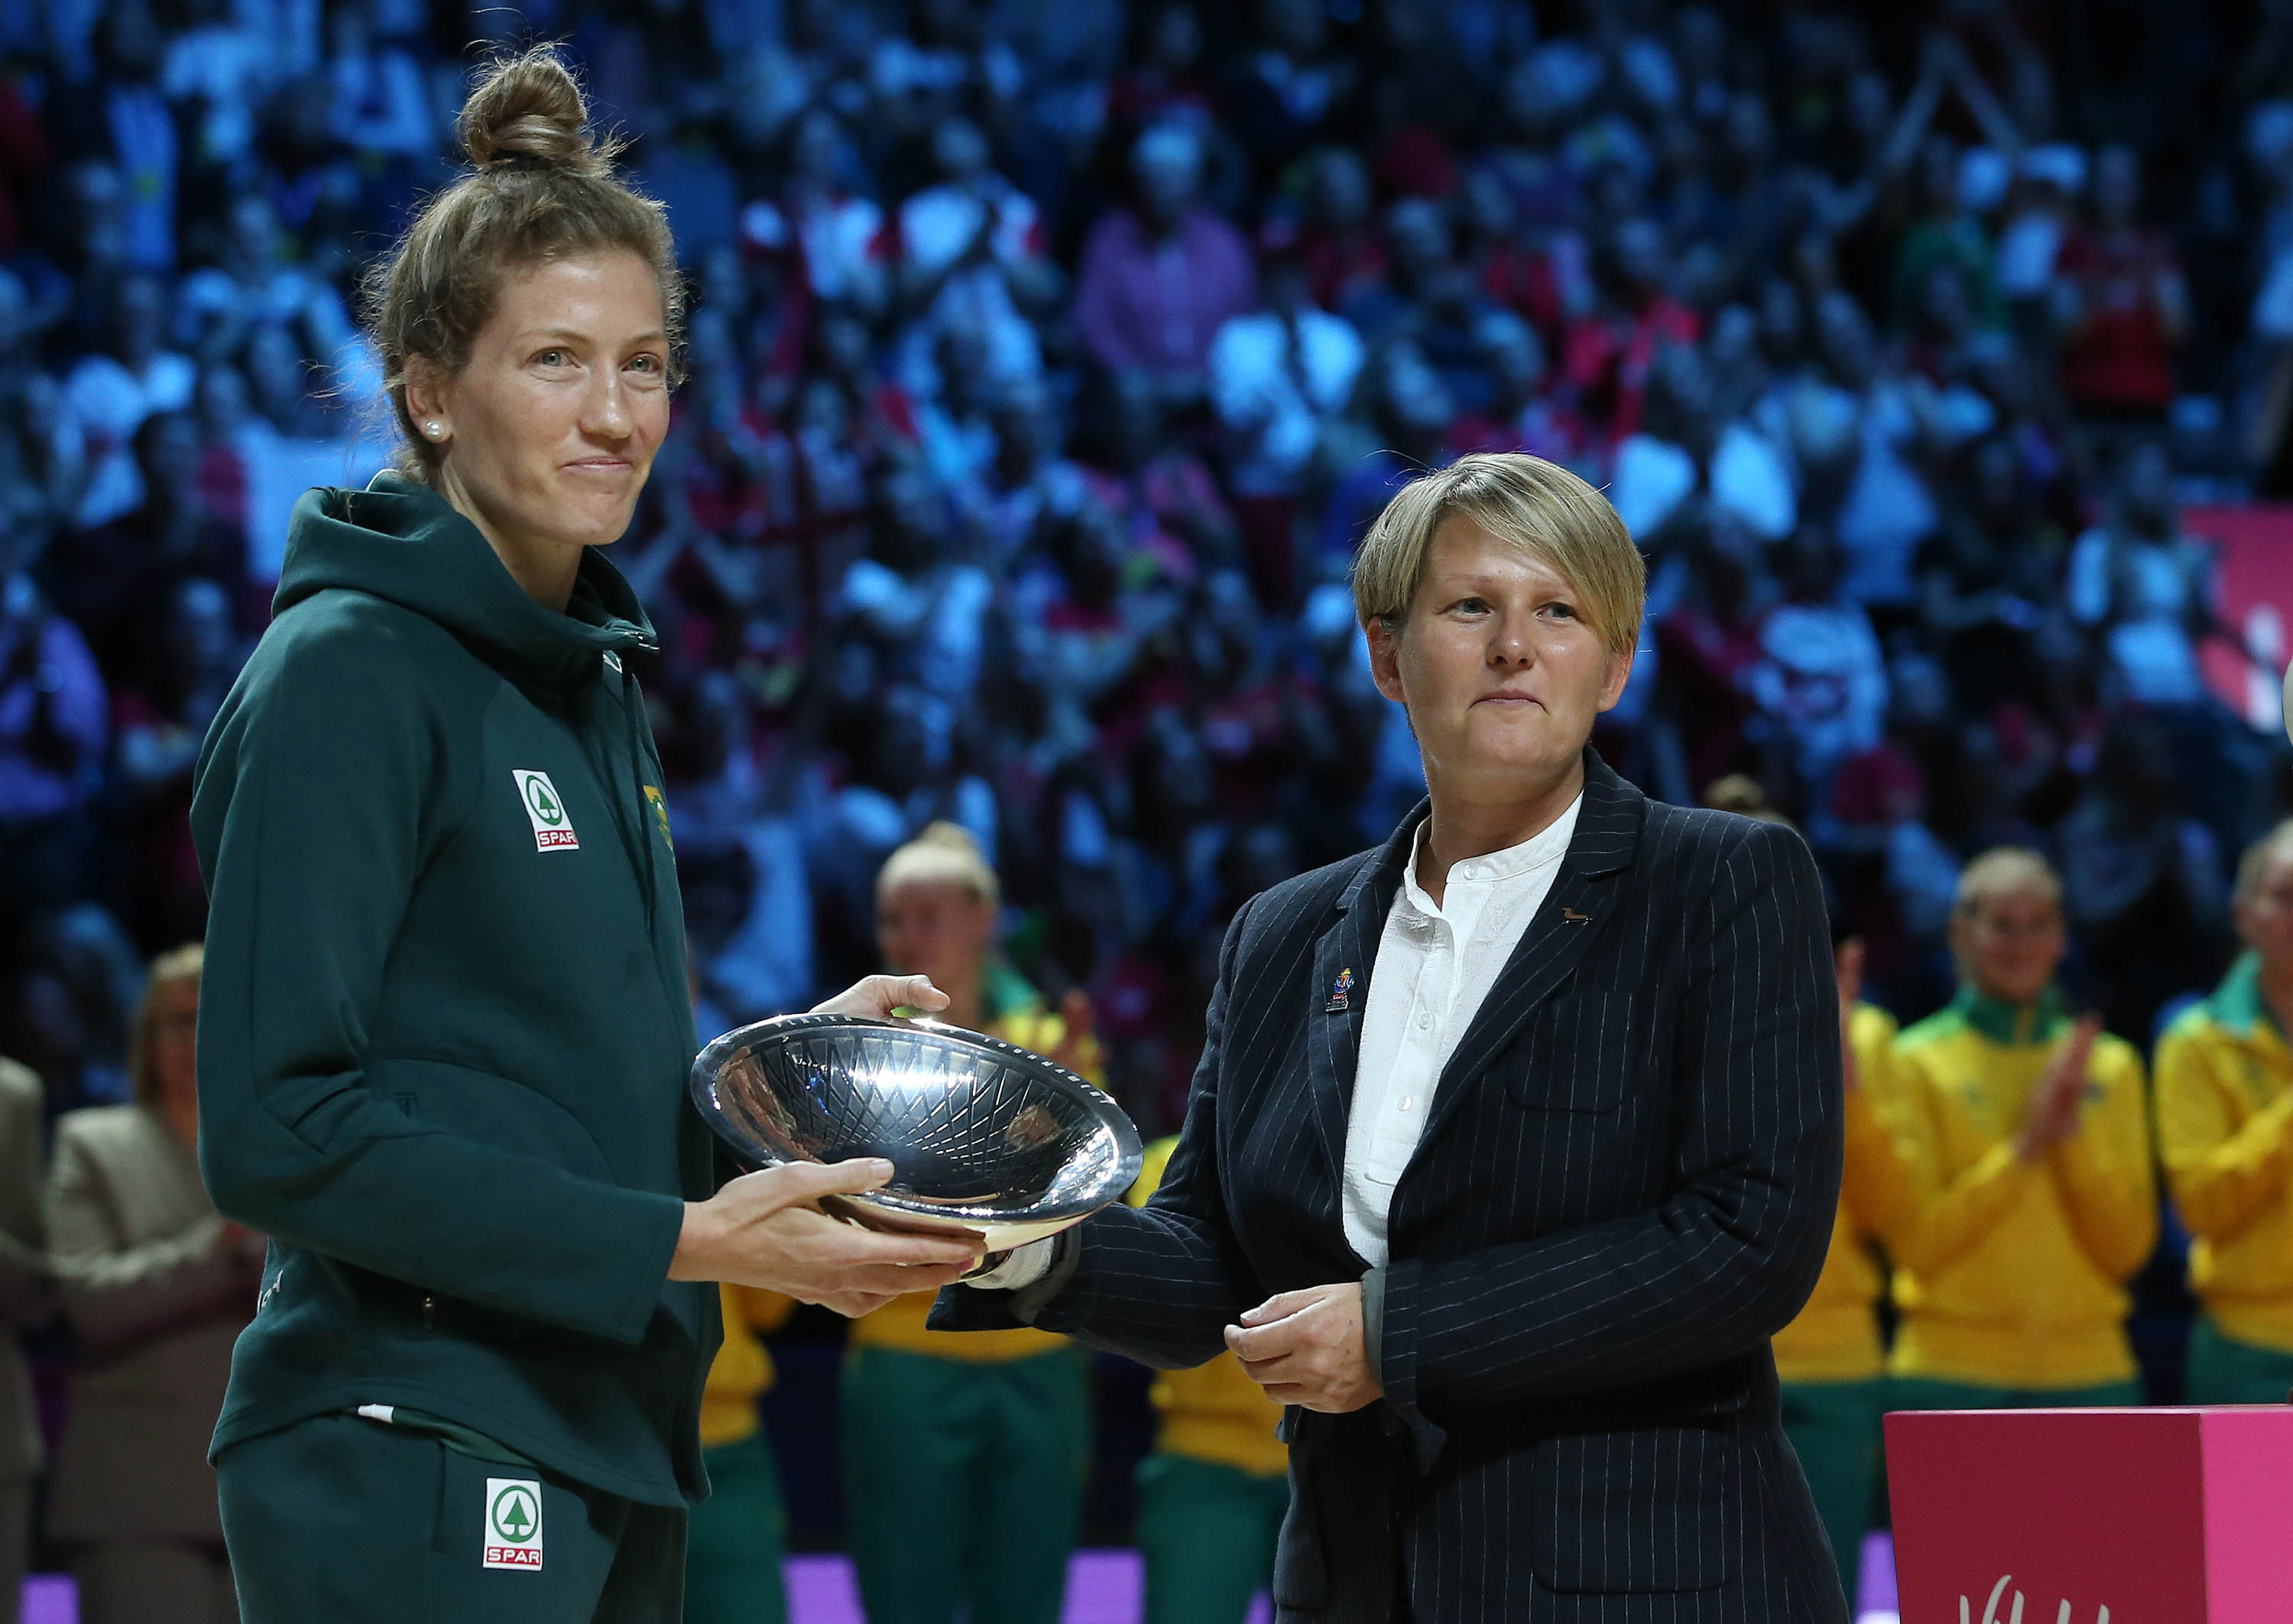 Karla Pretorius receives Player of the 2019 Vitality Netball World Cup in Liverpool